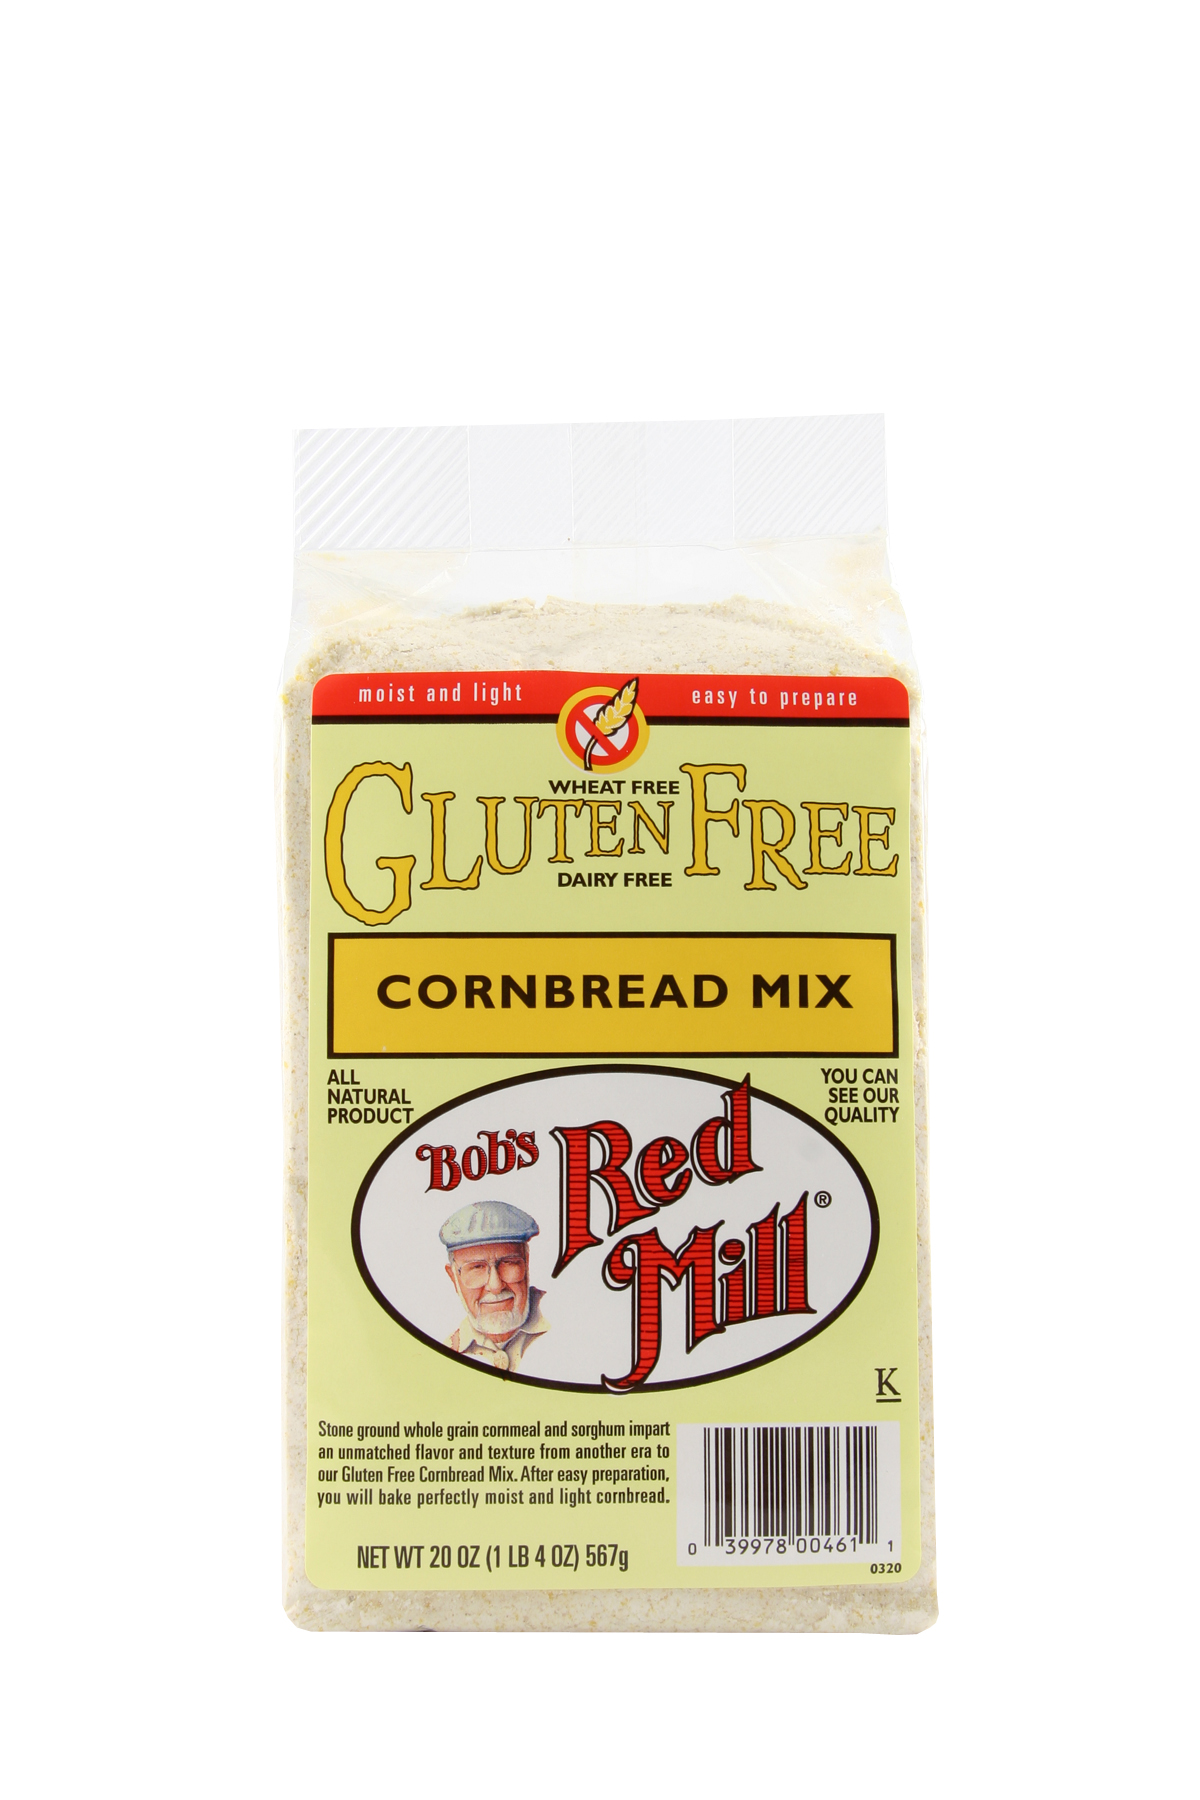 Our GF Cornbread Mix is incredibly versatile- try the recipe below for a real treat!